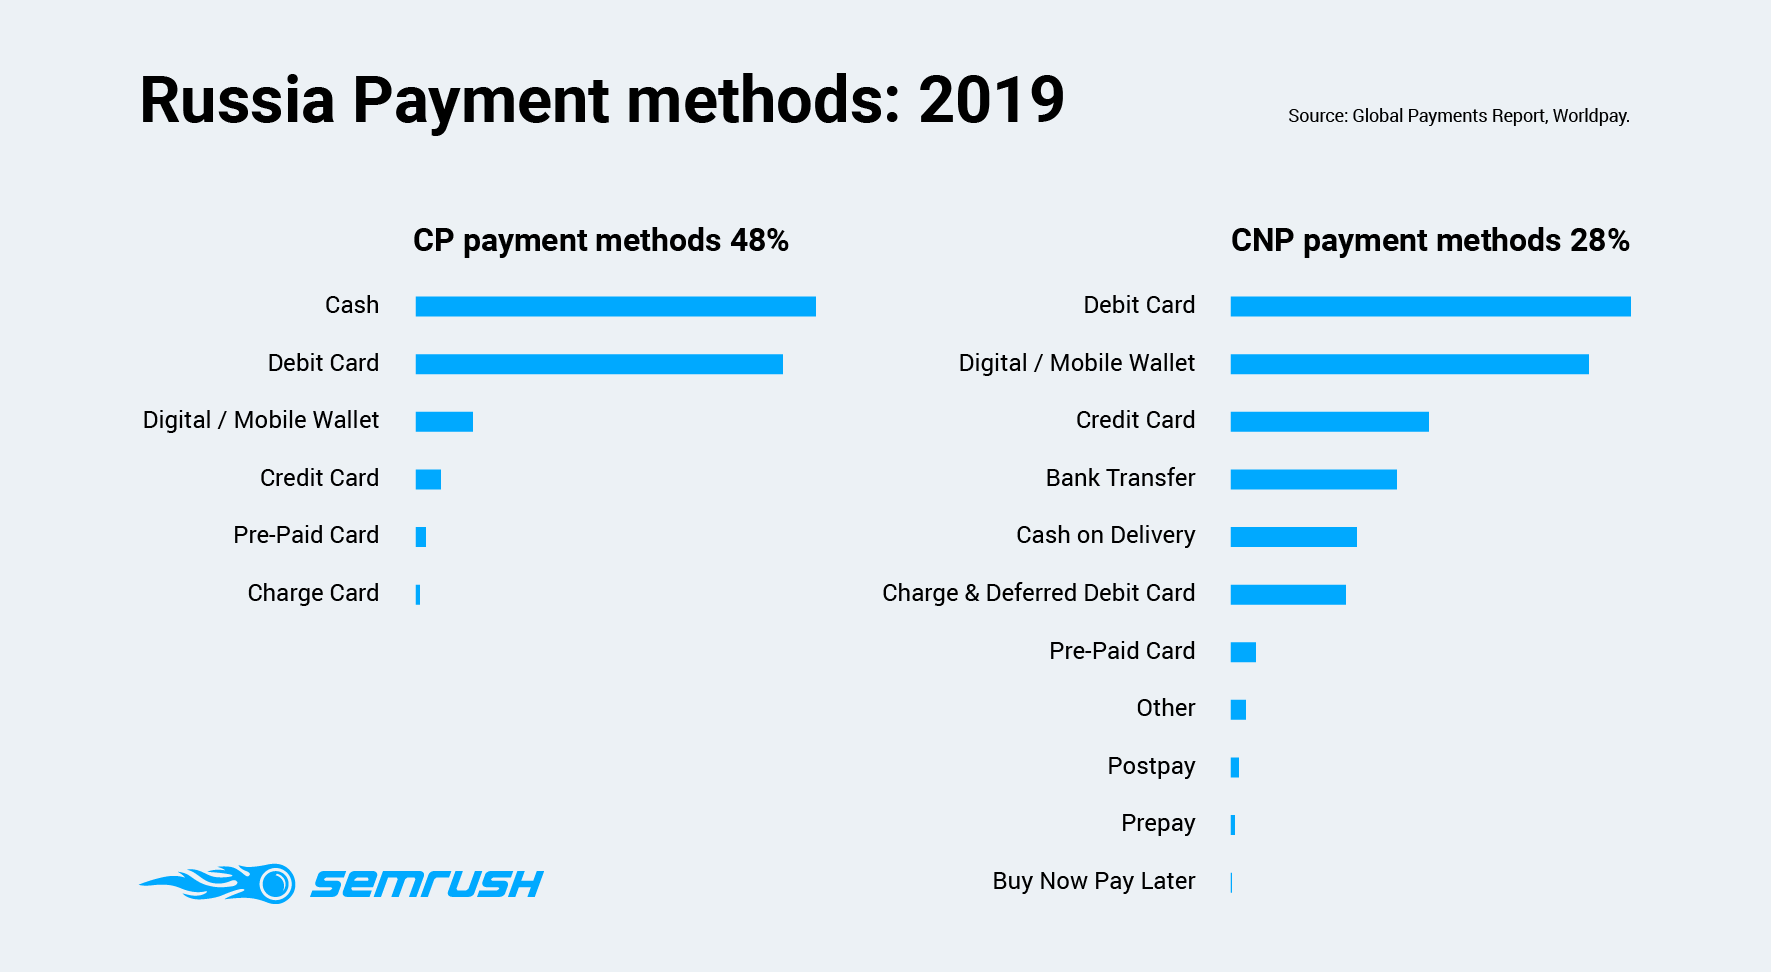 Russia Payment methods